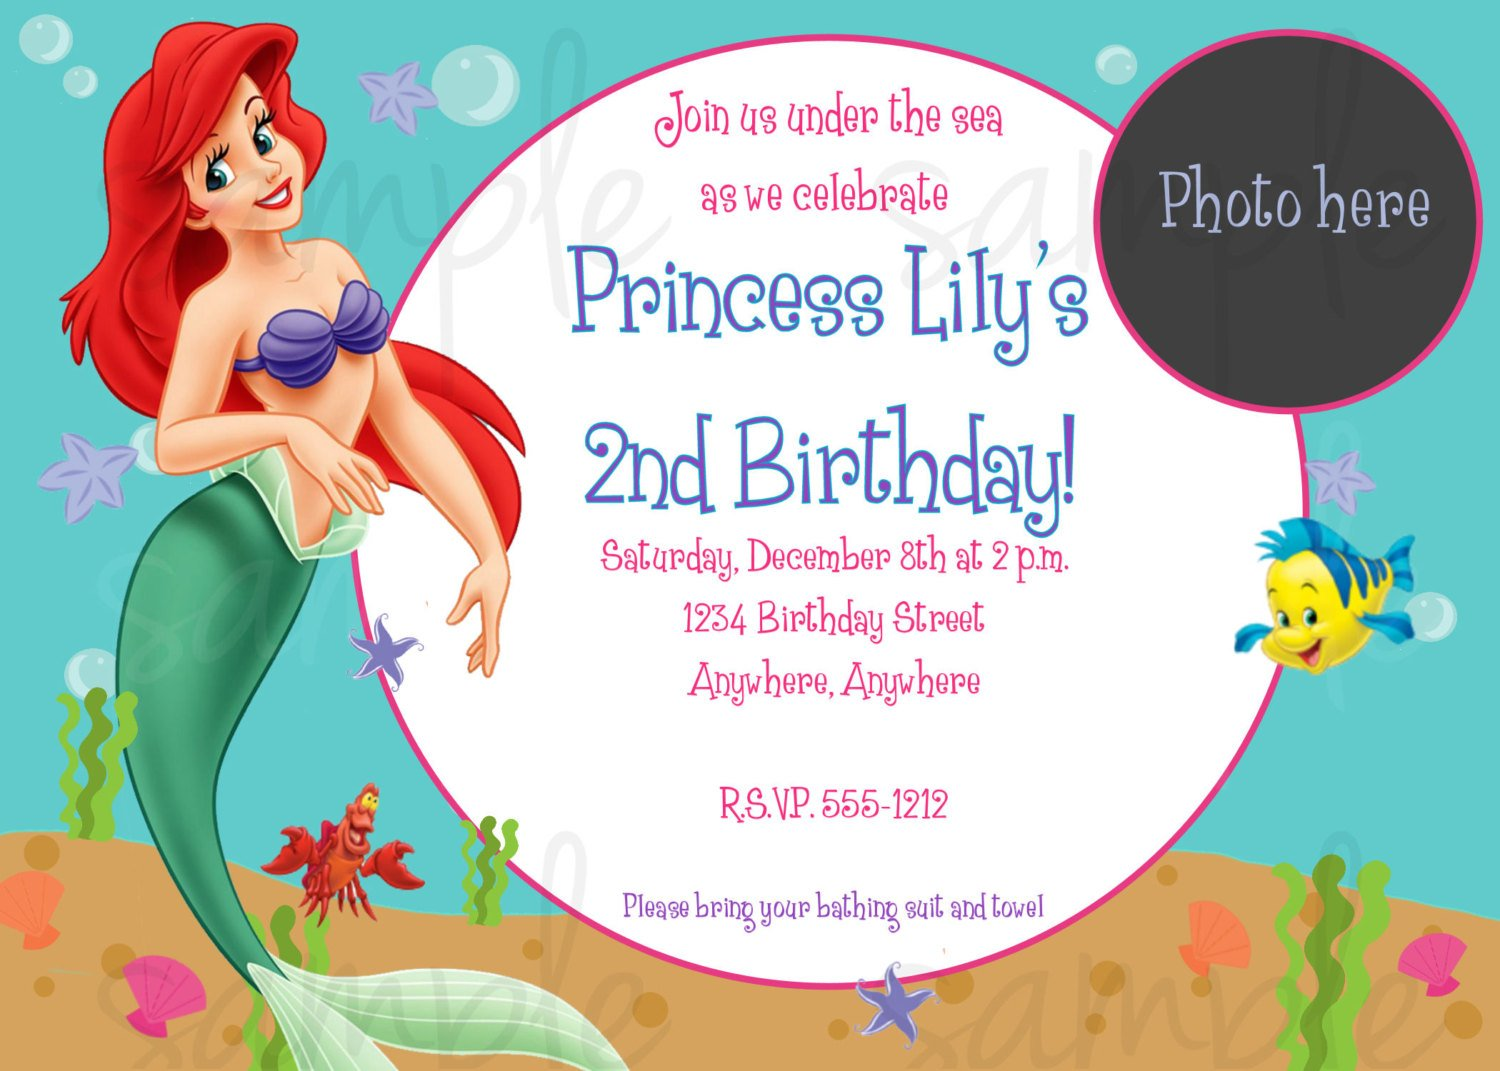 Mermaid Birthday Party Invitations – BagVania Invitations Ideas